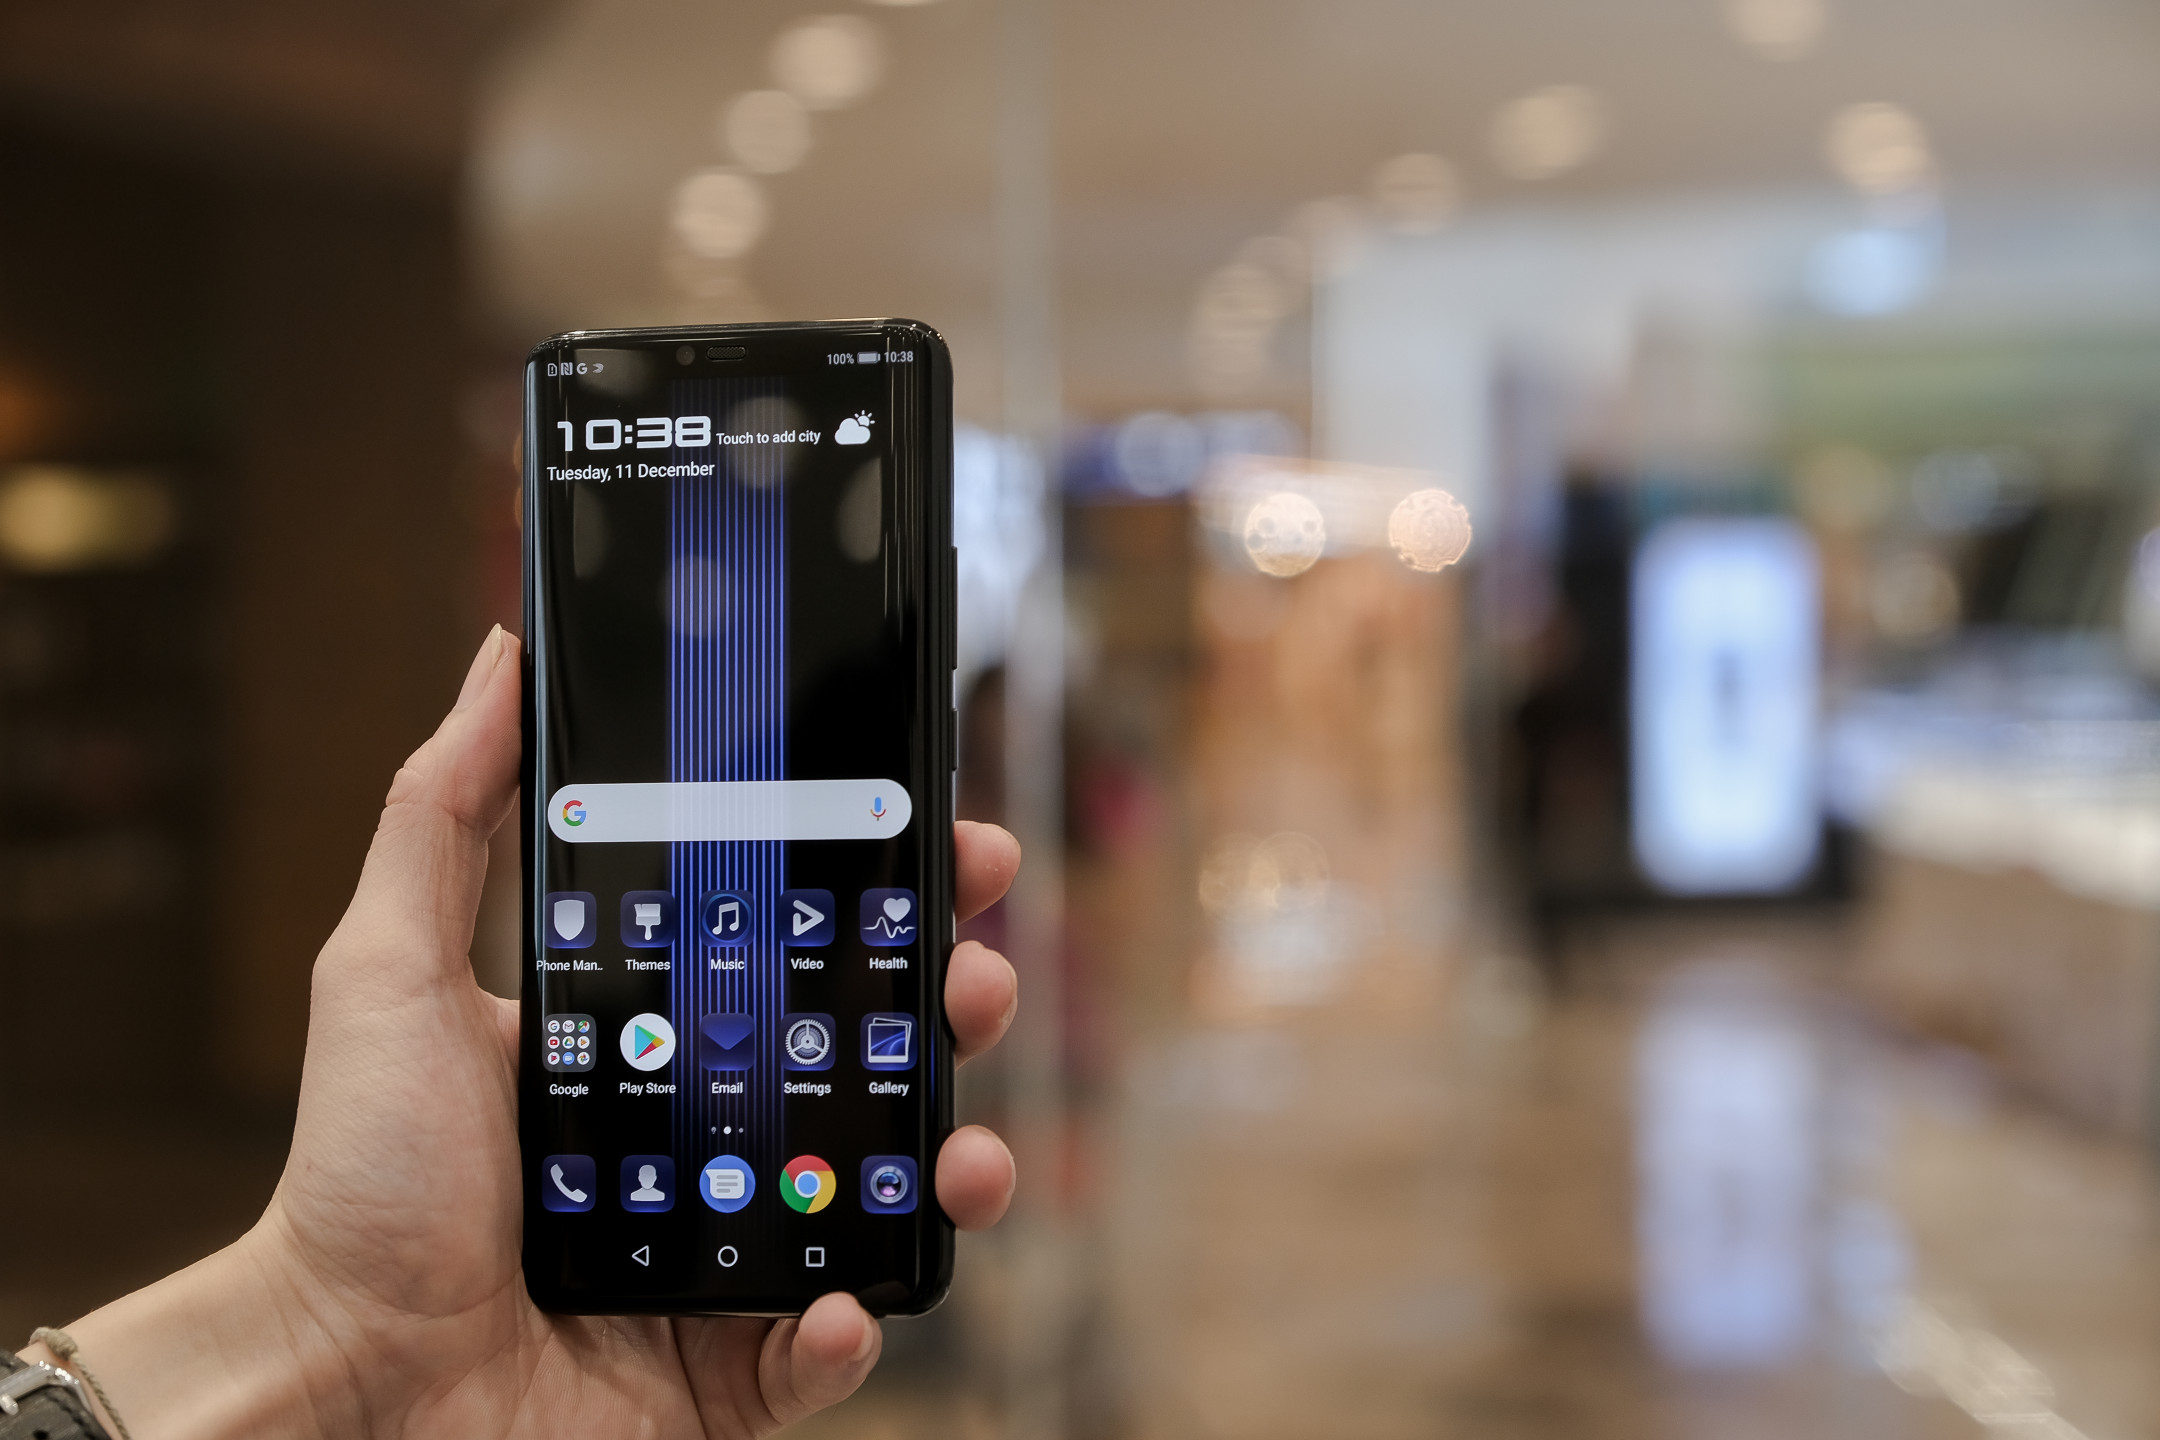 US China trade war escalates: Google suspends Huawei android service